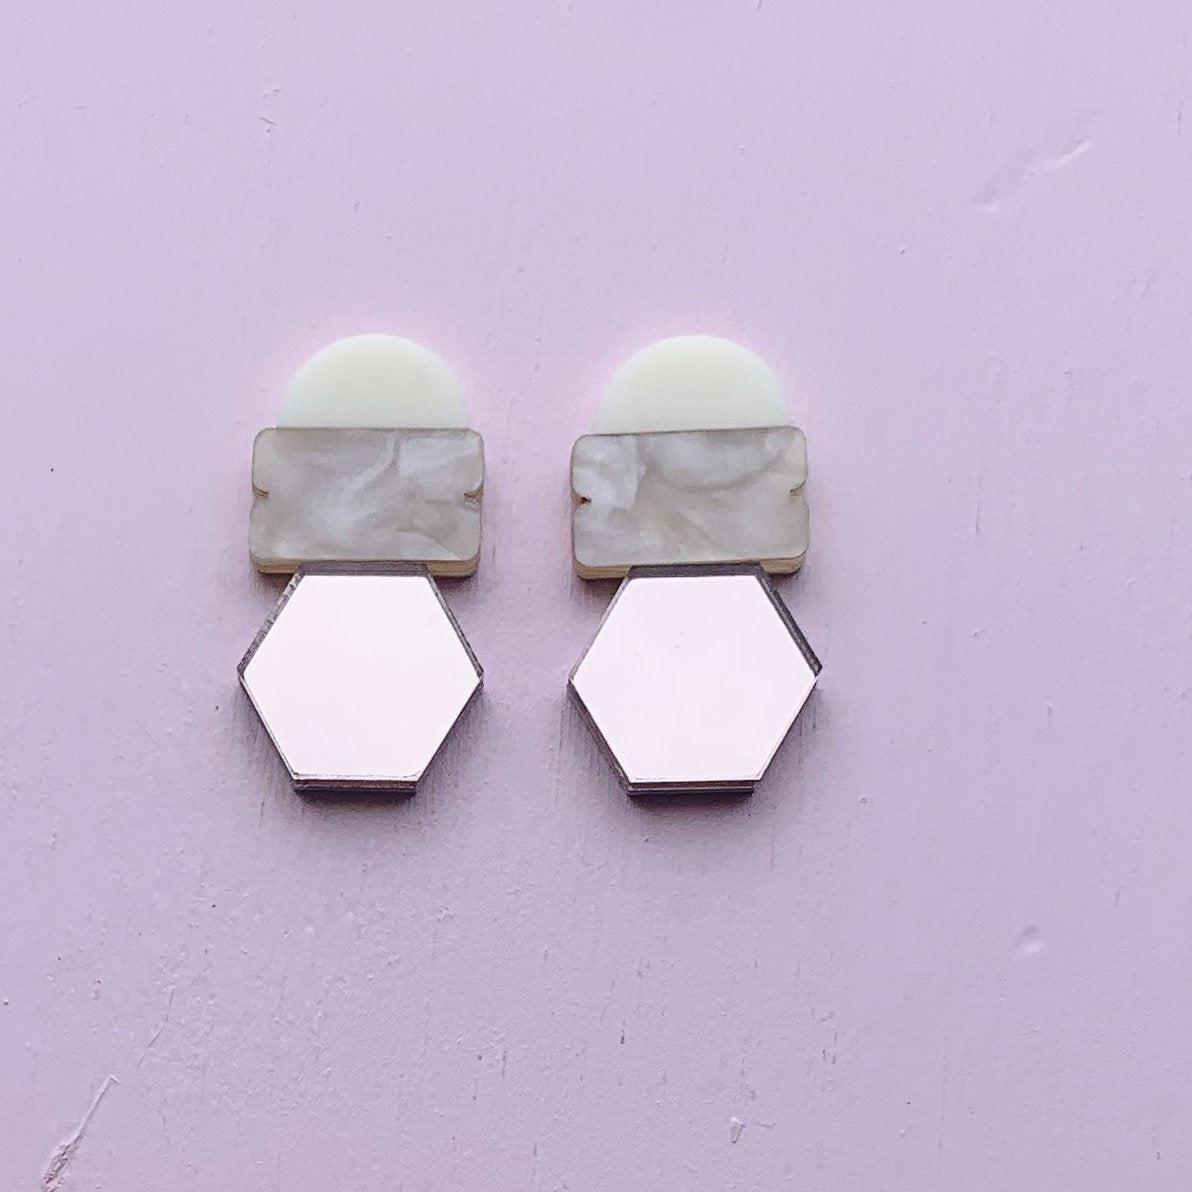 Emeldo Lena Earrings